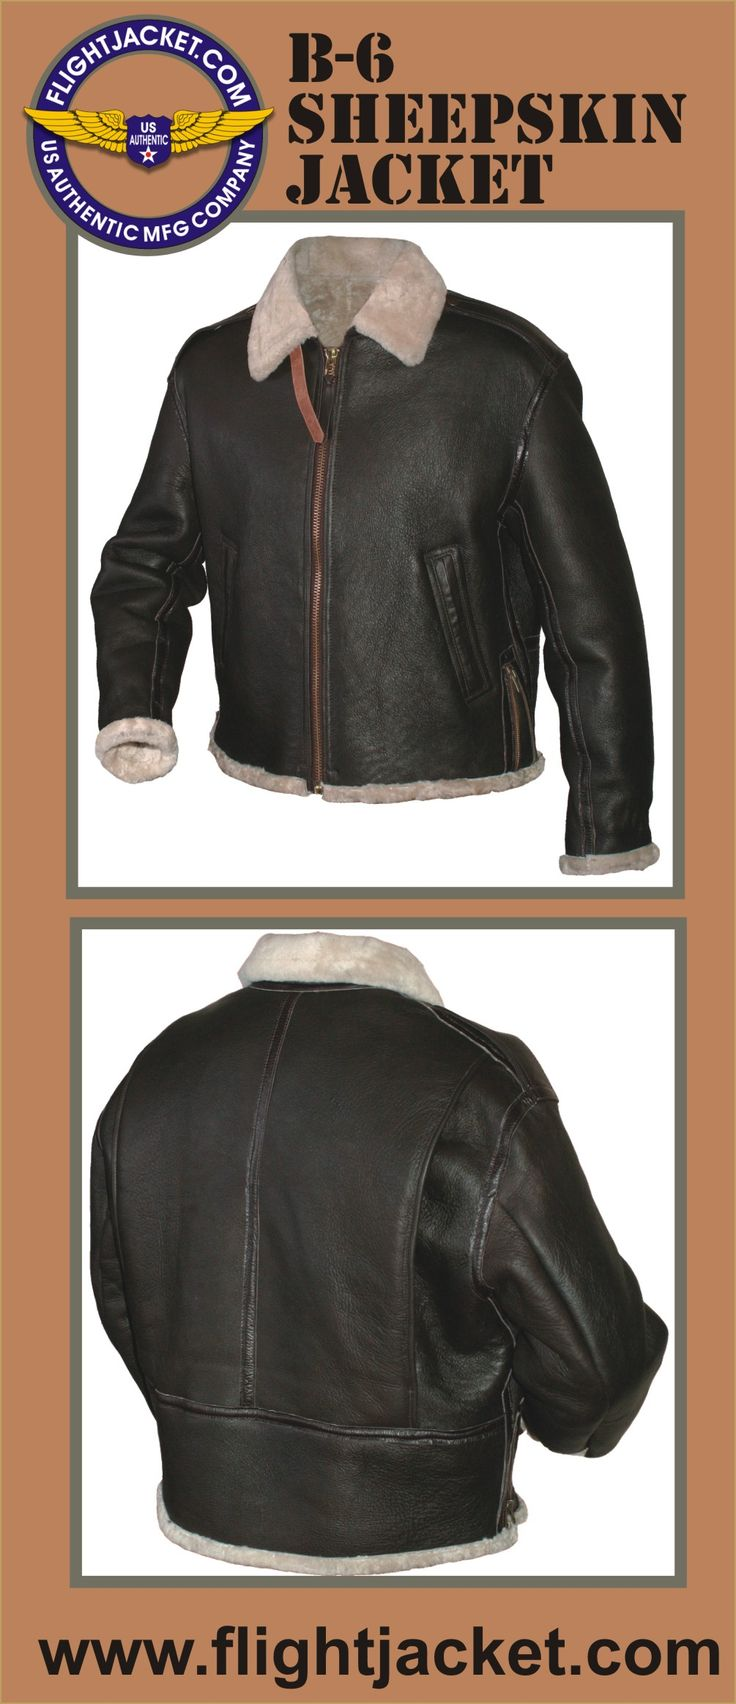 Medium- weight sheepskin (12-14 mm), natural white color fur and seal brown exterior. Collar with one buckled closure strap. The sheepskin visible at the cuffs and waist. Two front flush- sewn slash pockets. Front Talon zipper. Snapped cuffs. Under collar strap closure. Side seam zippers for sweep adjustment. Goatskin enforcement strip over all seams.  Explore the collection of our military spec. flight jackets at a discounted price. Made IN THE USA www.flightJacket.com